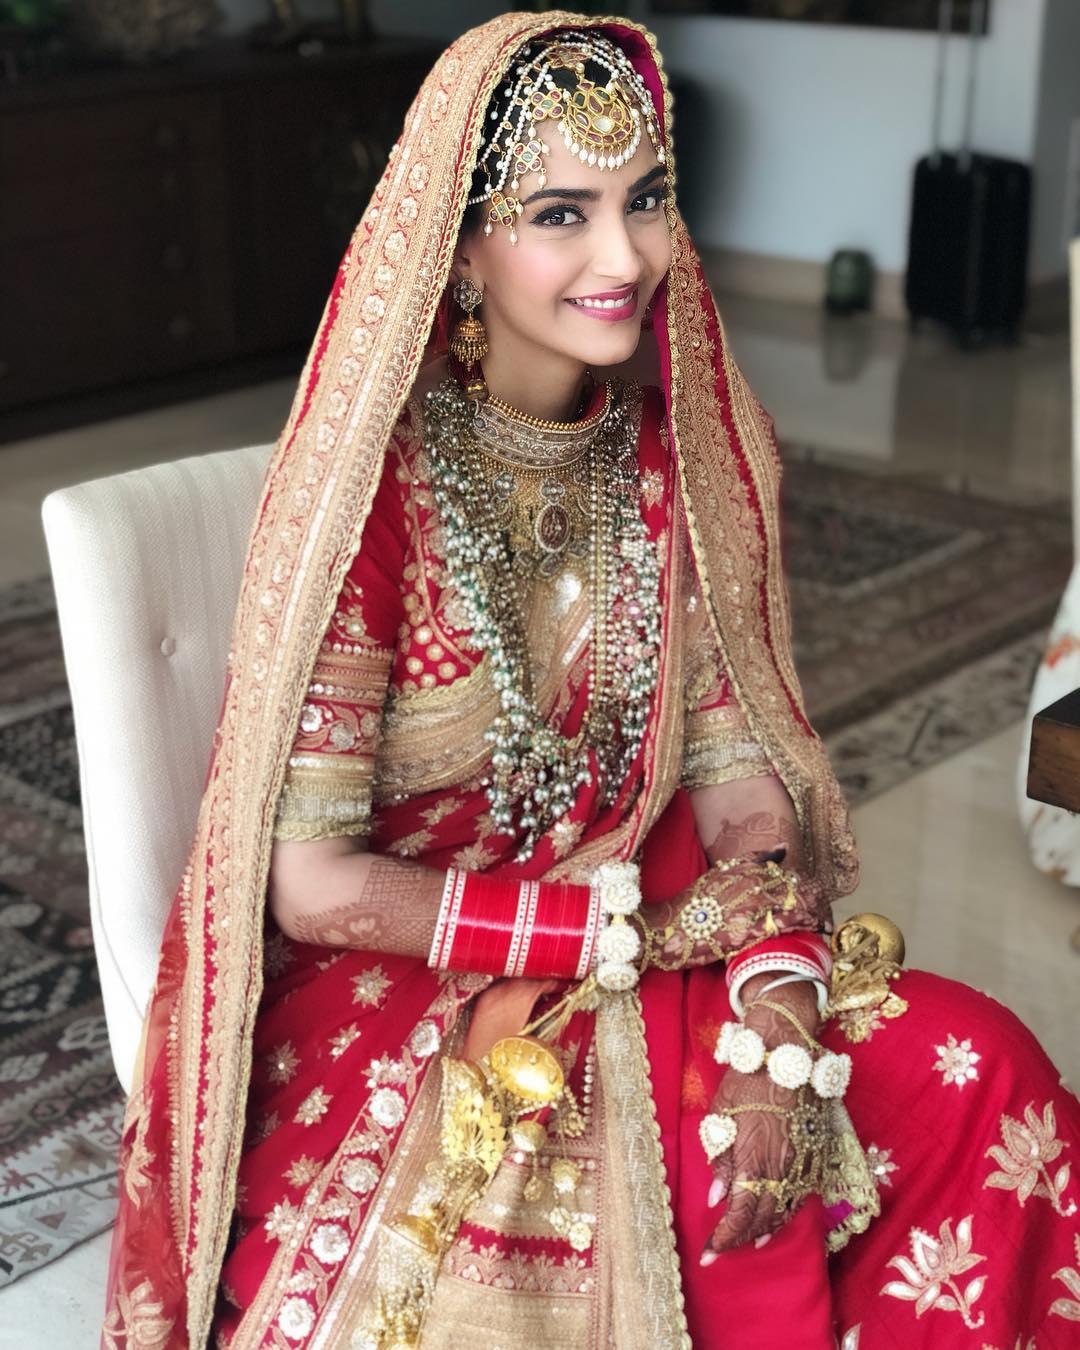 Sonam Kapoor's wedding makeup by Namrata Soni - almost a no-makeup look so that the matha-patti is the highlight.